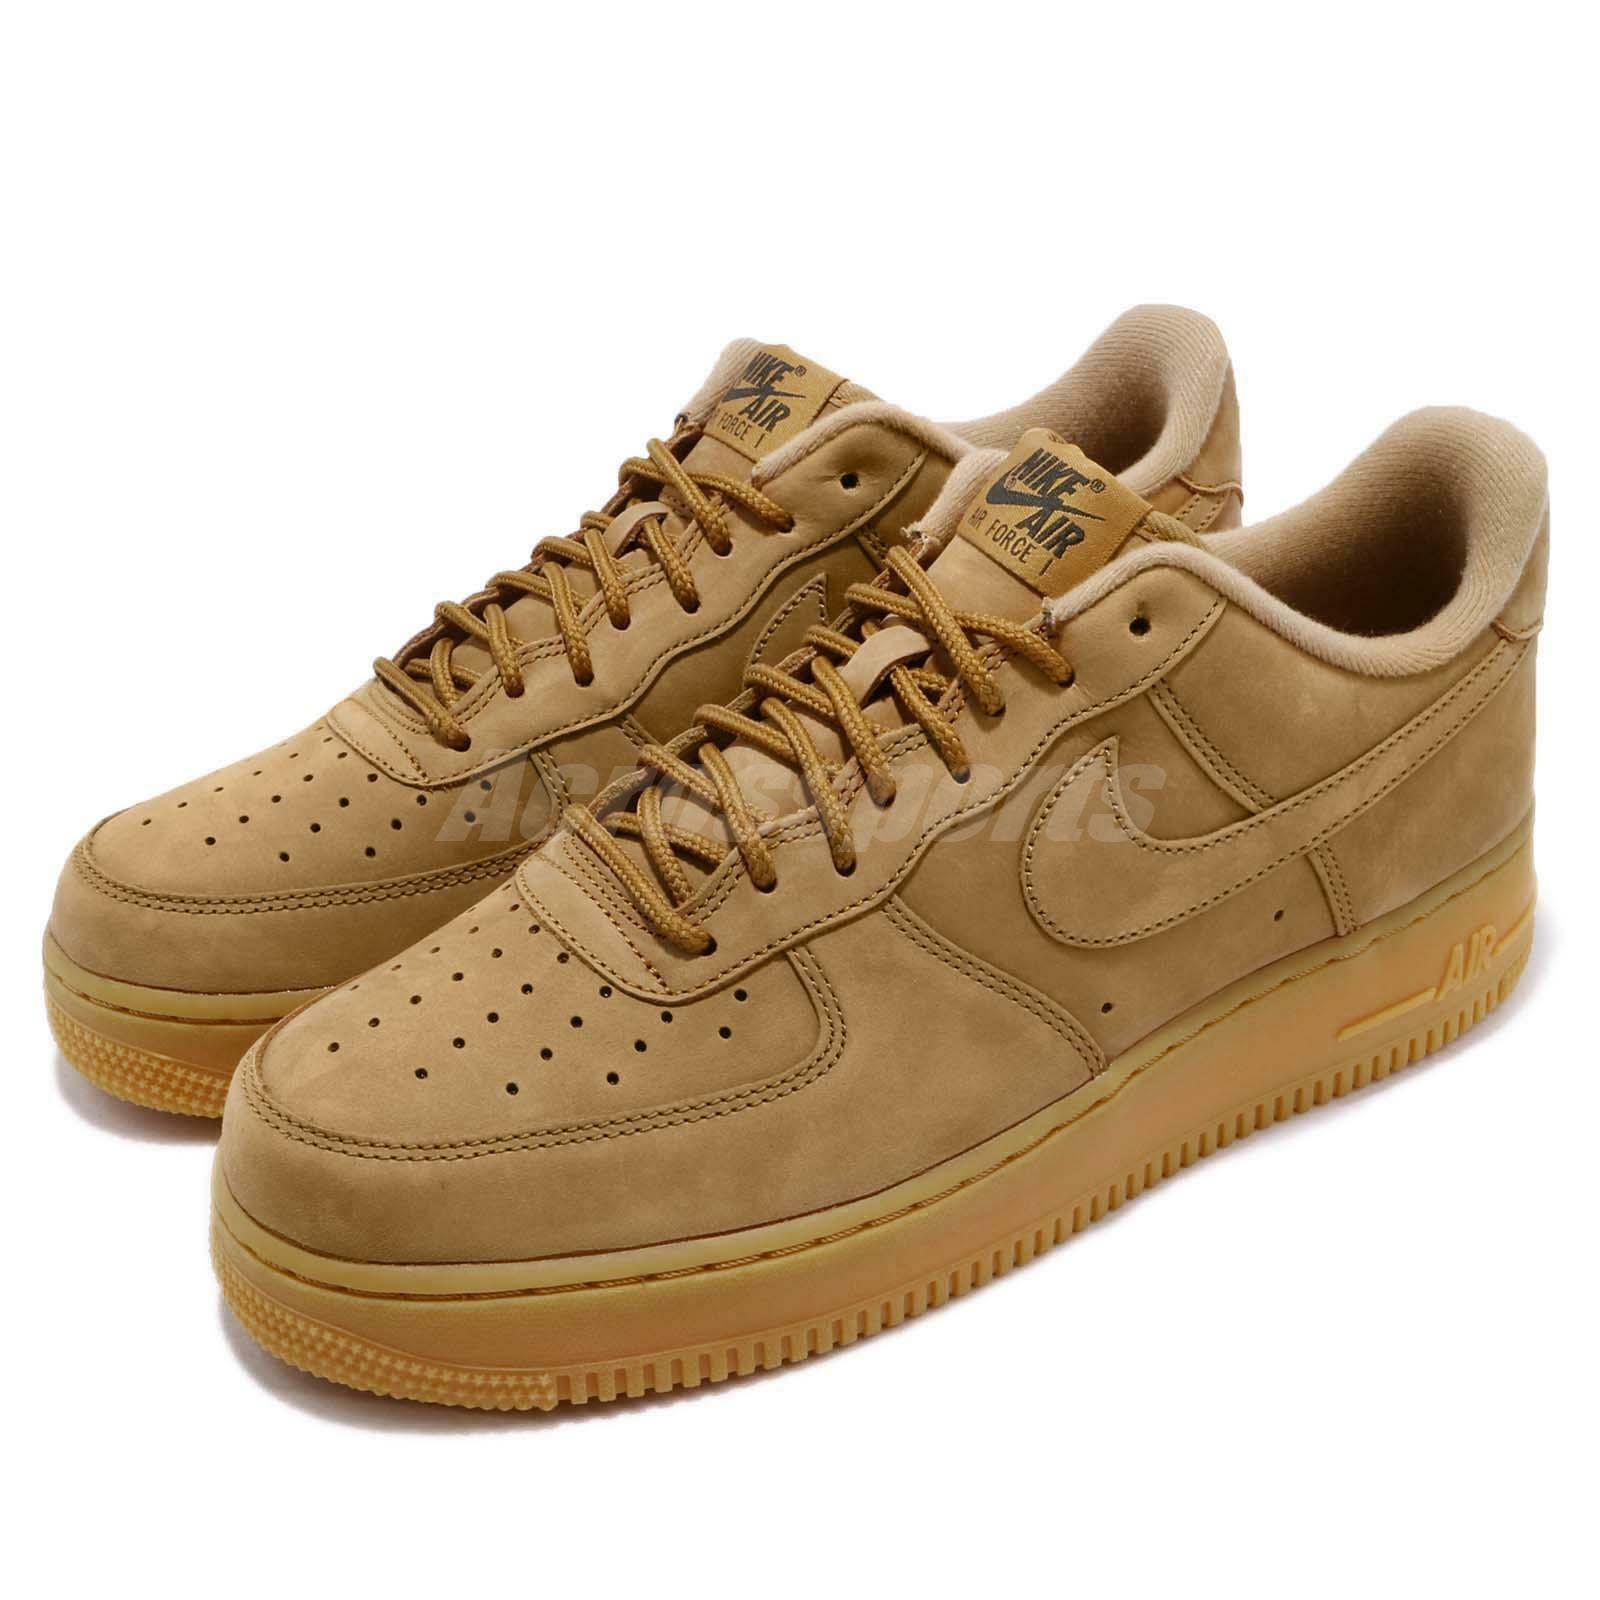 Nike Air Force 1 07 WB Flax Wheat Marron Mens Chaussures Baskets AF1 AA4061-200